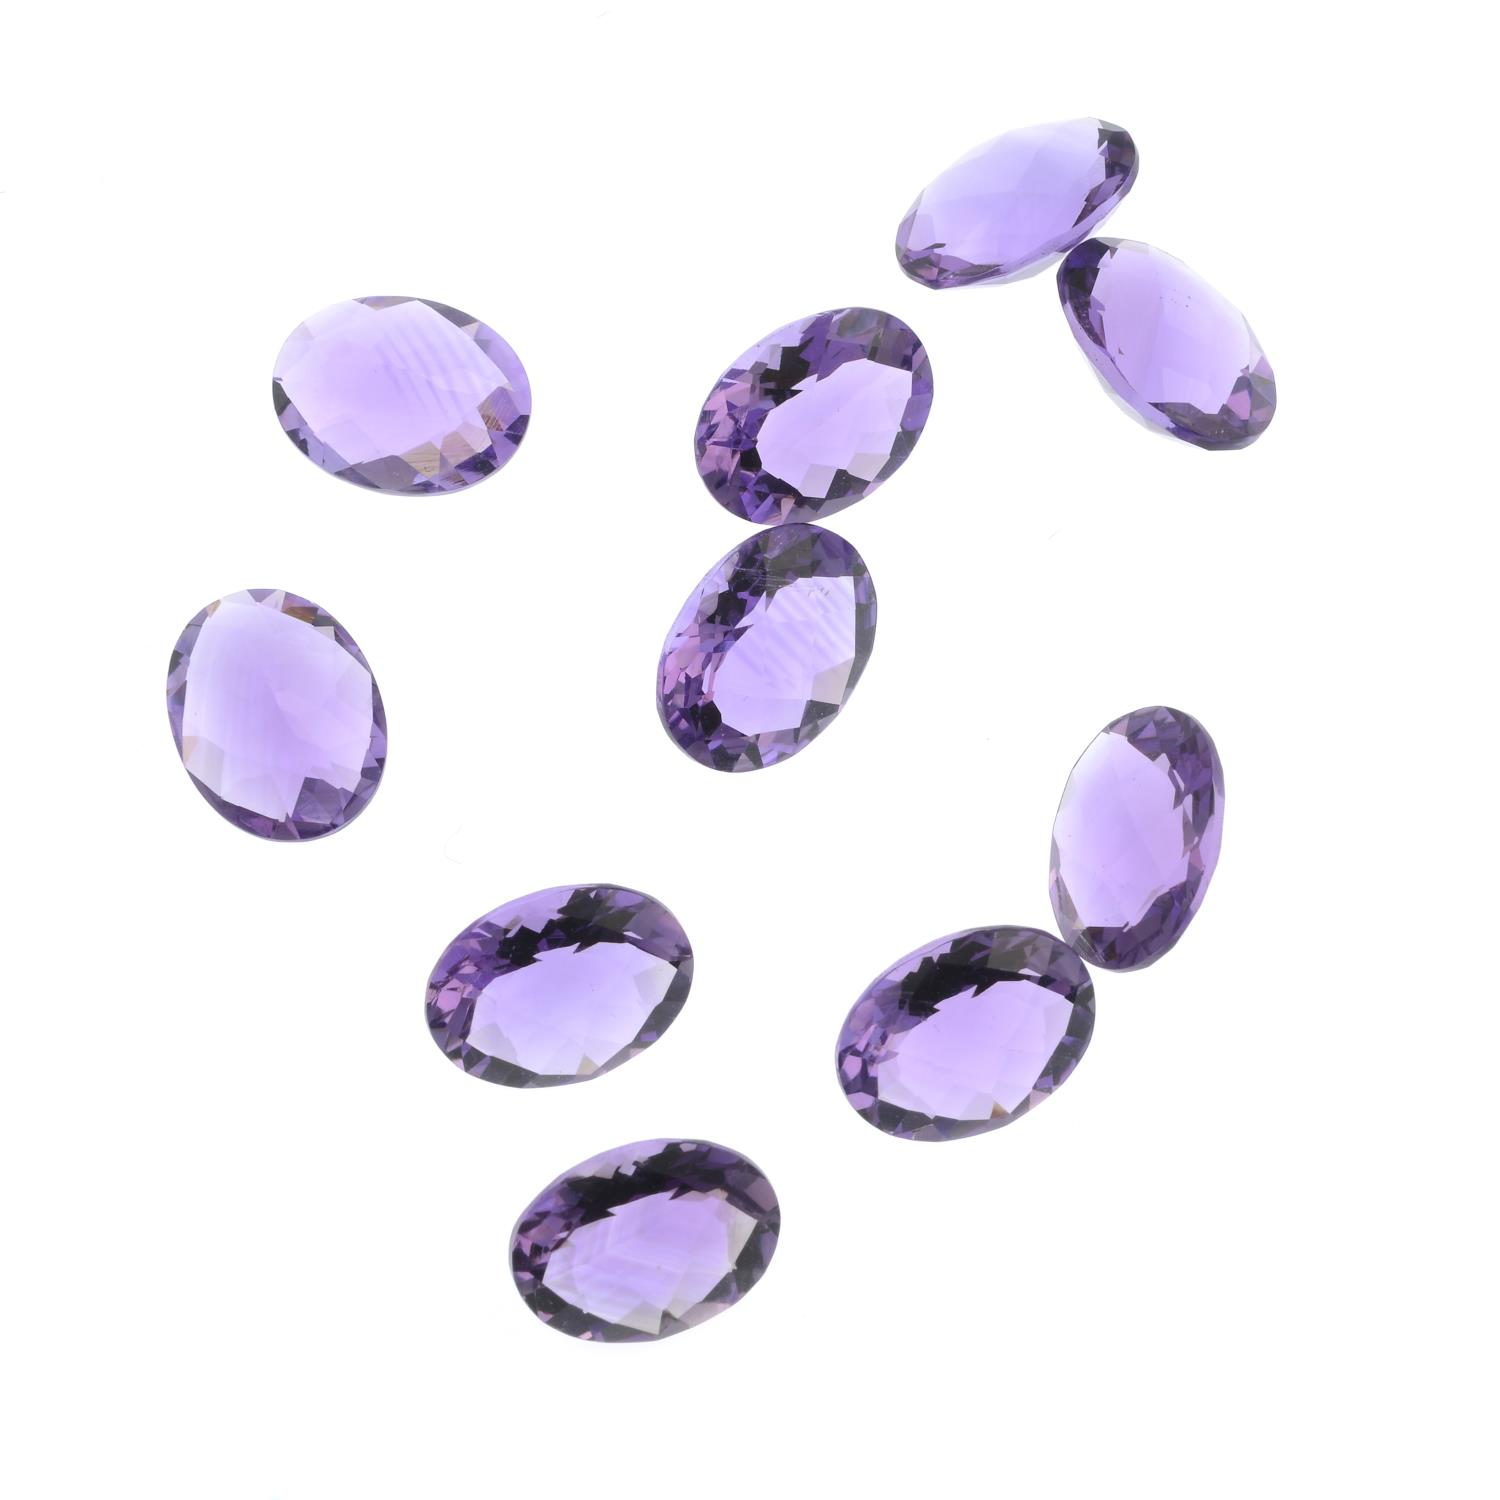 Ten oval-shape amethysts, total weight 15cts. - Image 2 of 2